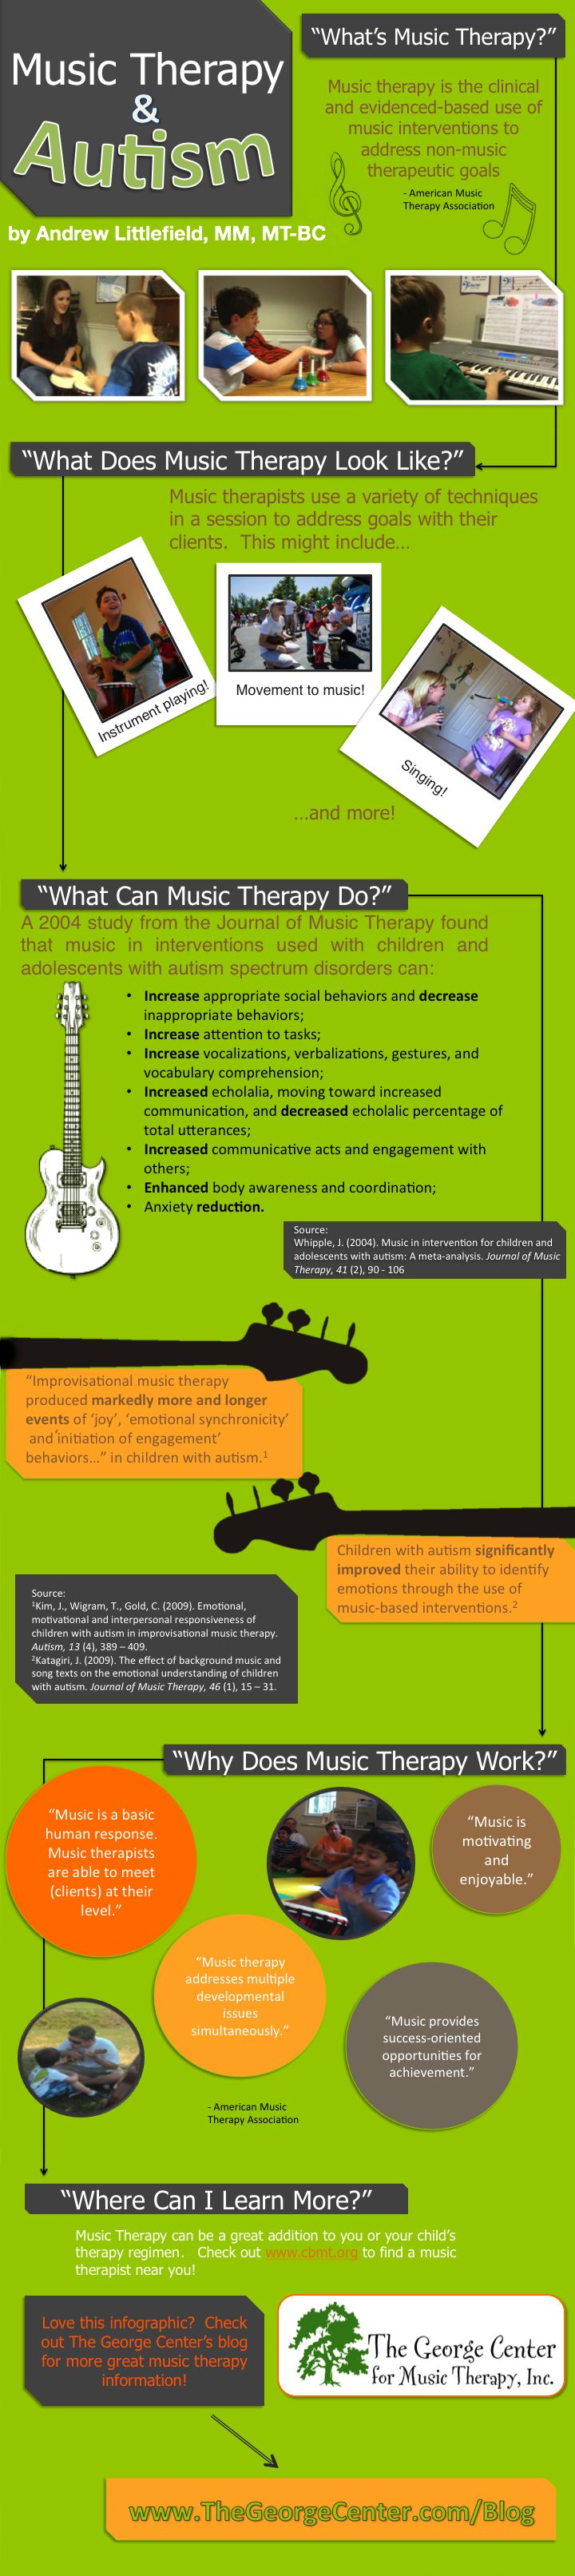 Music Therapy and Autism infographic from The George Center #WestMusic #InspireMyClass-  If only my insurance would cover this.  I truly believe that it would help my son.